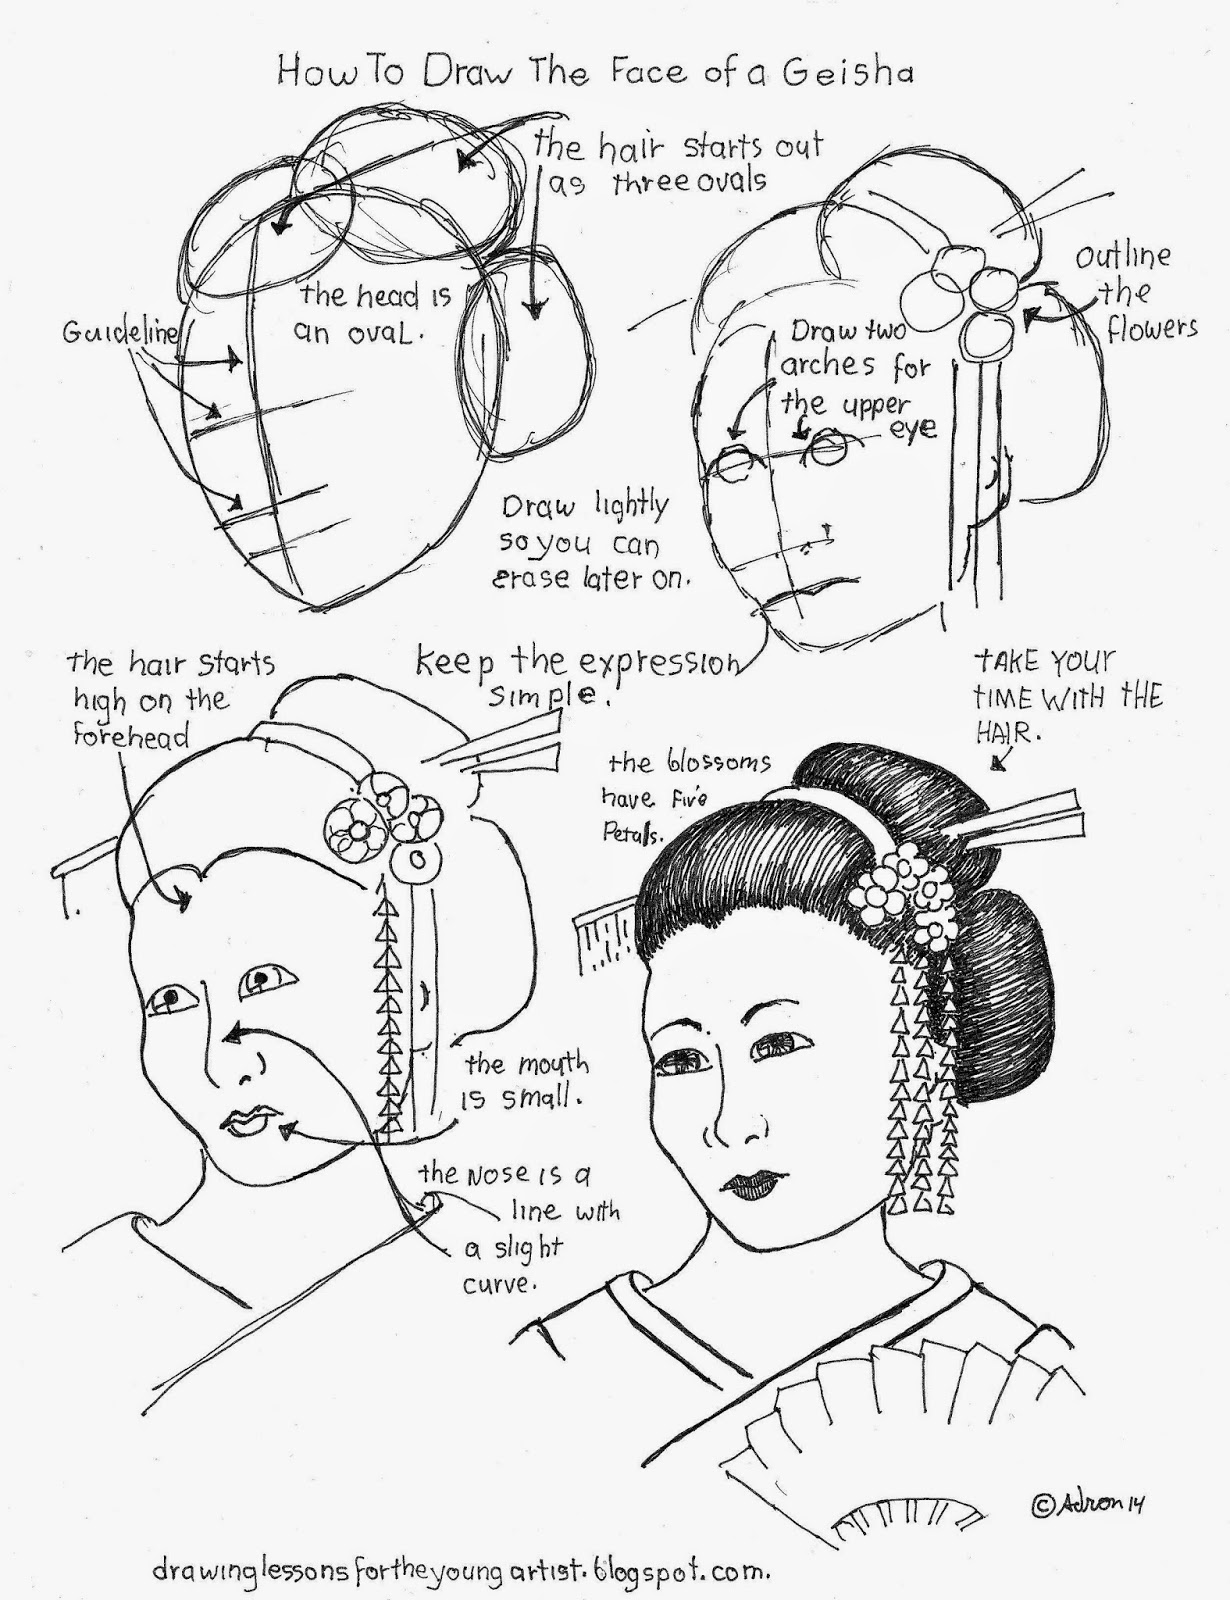 How To Draw Worksheets For The Young Artist How To Draw The Face Of A Geisha Free How To Draw